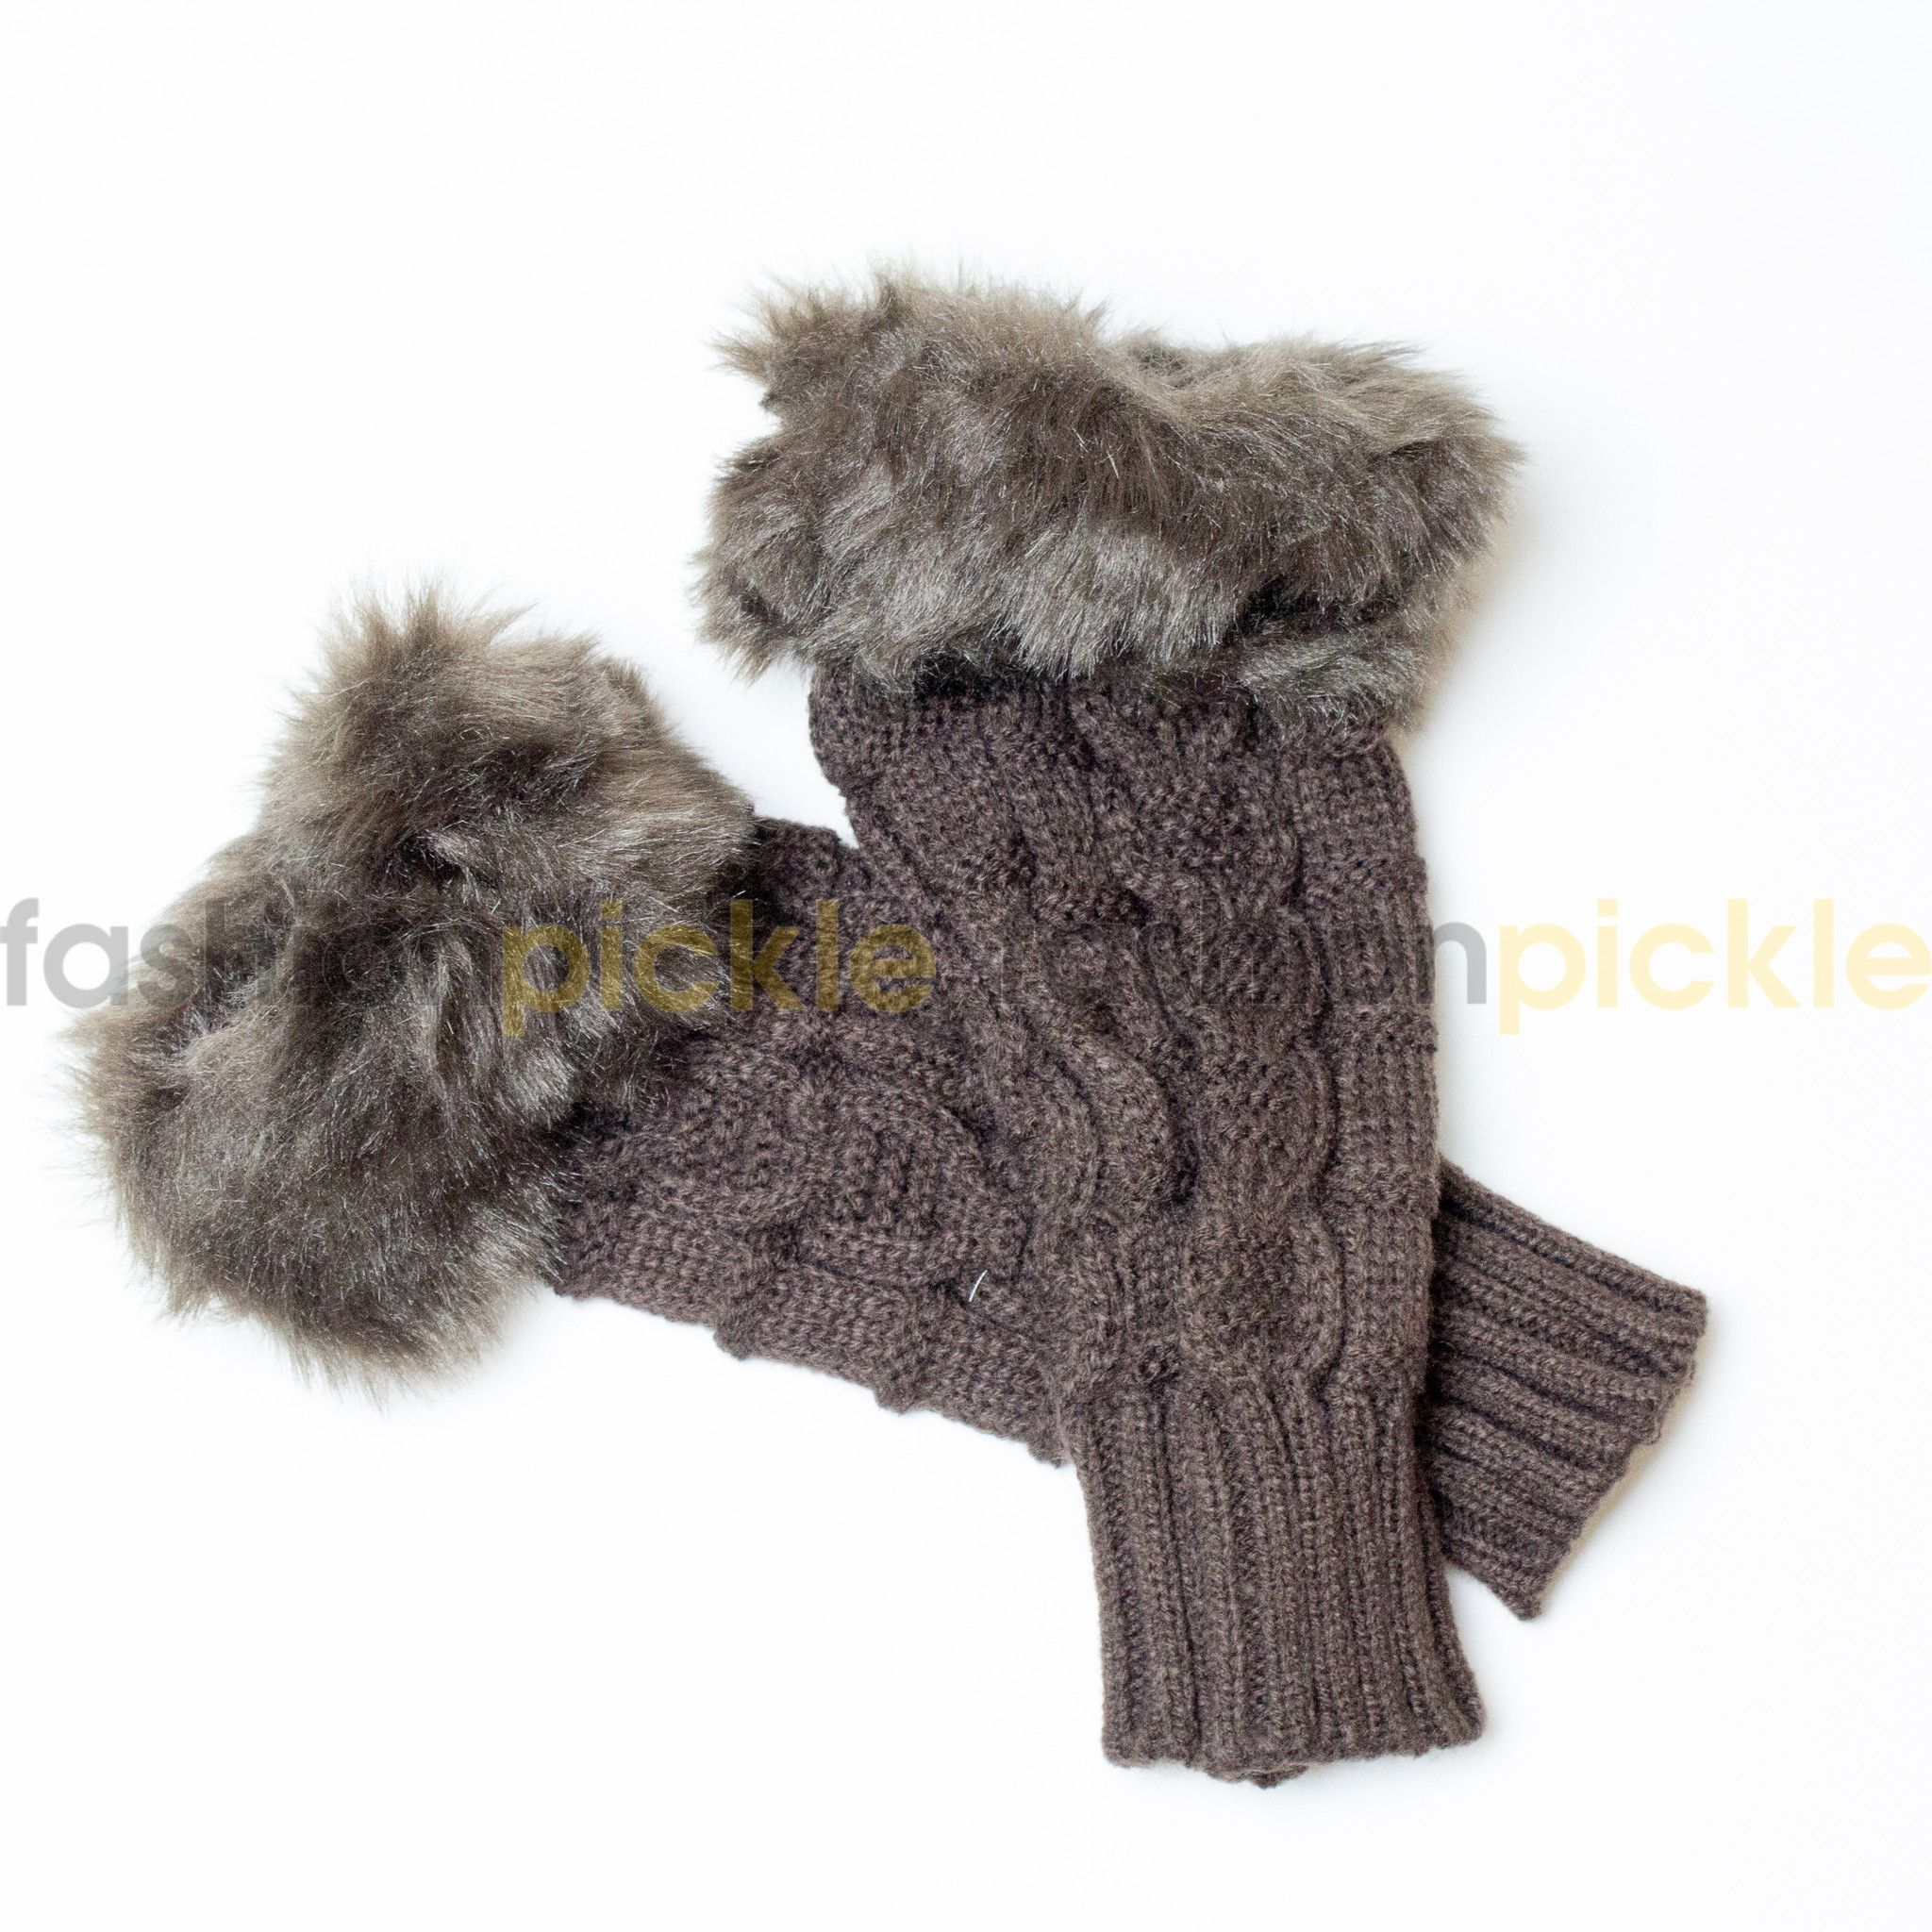 Woolen Handwarmer/Fingerless Gloves - Brown